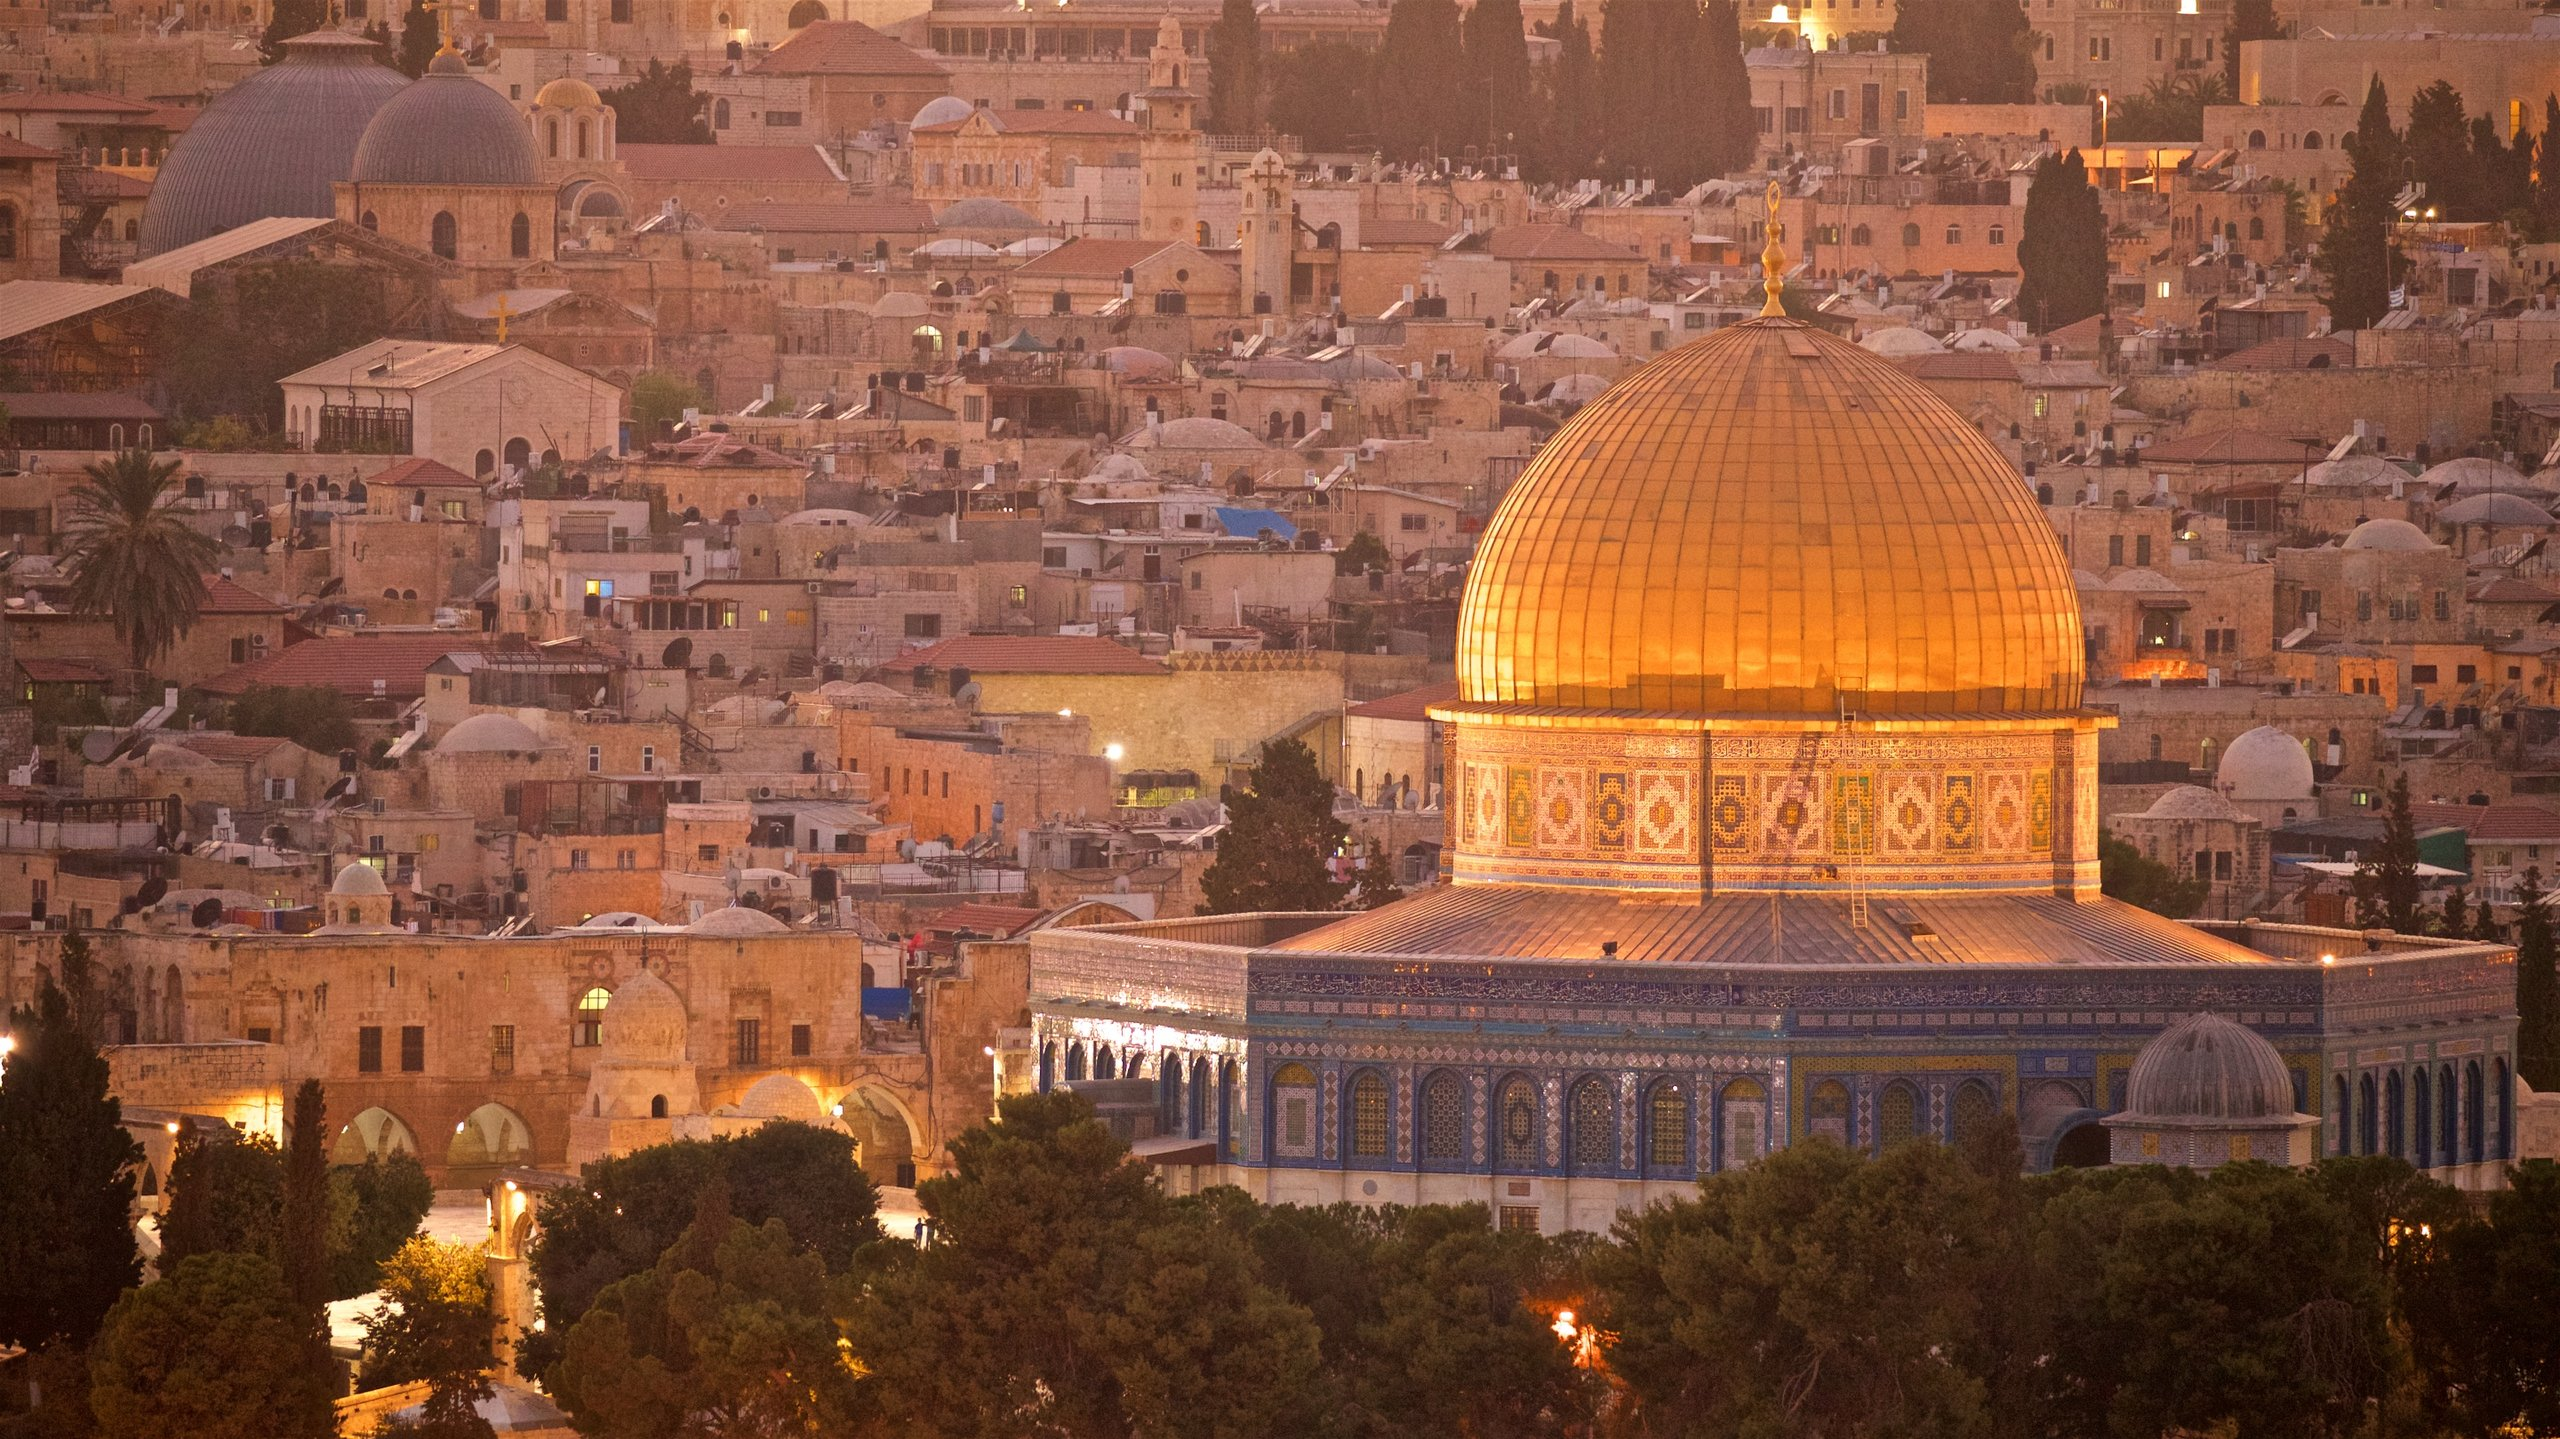 An iconic symbol of the city, this shrine topped by a gold dome is of special significance to people of Jewish, Christian and Muslim faiths.